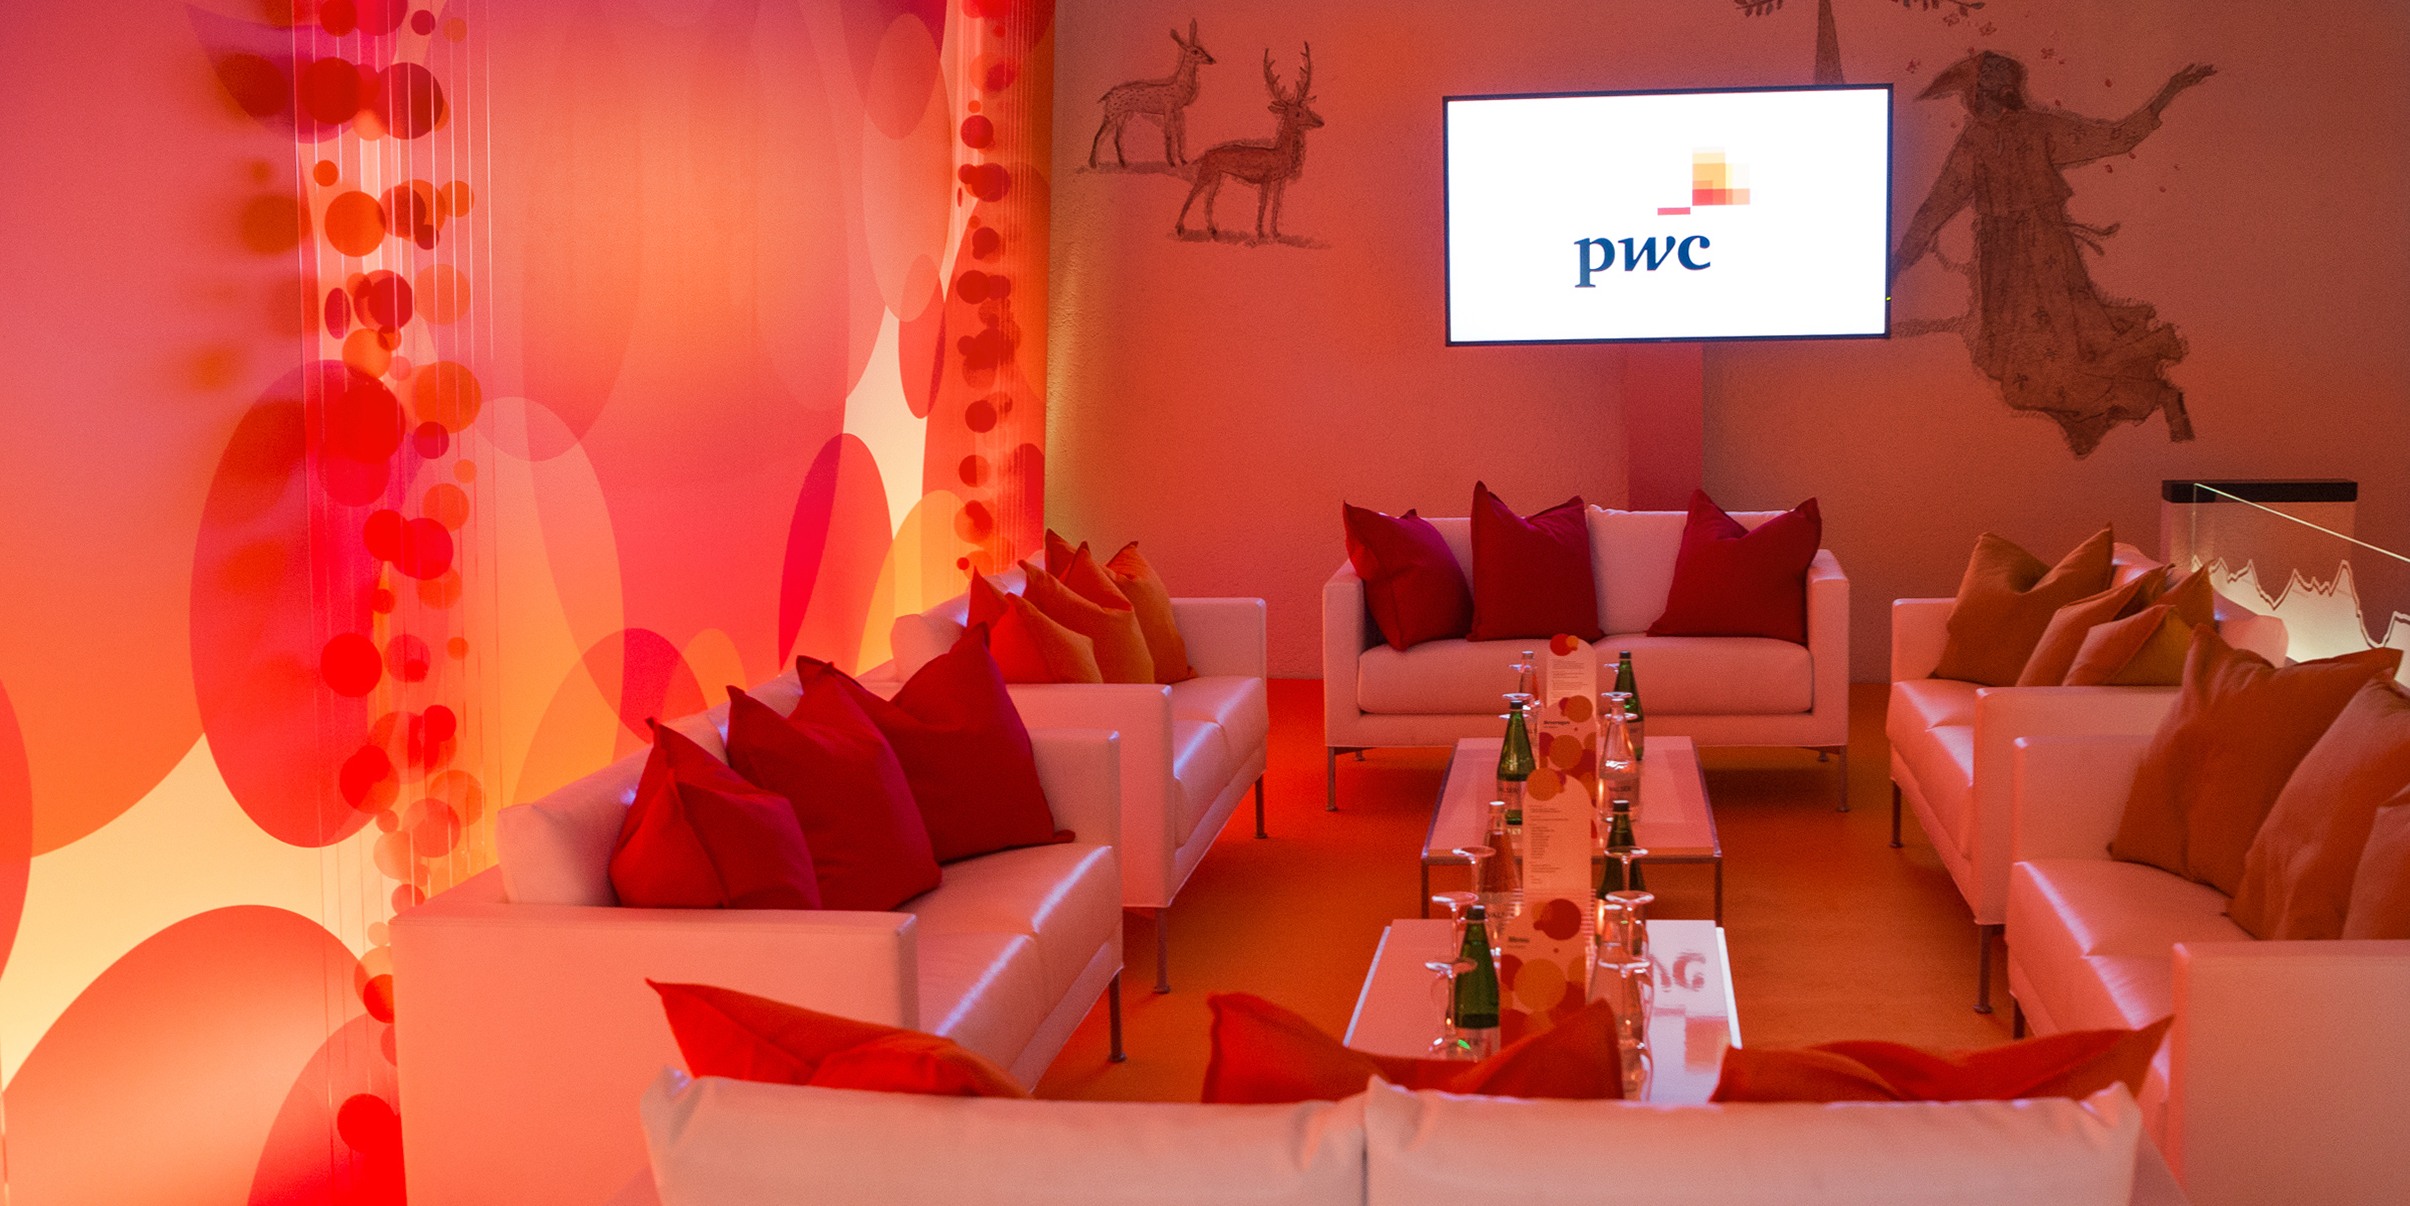 h&p_pwc Event WEF 2019